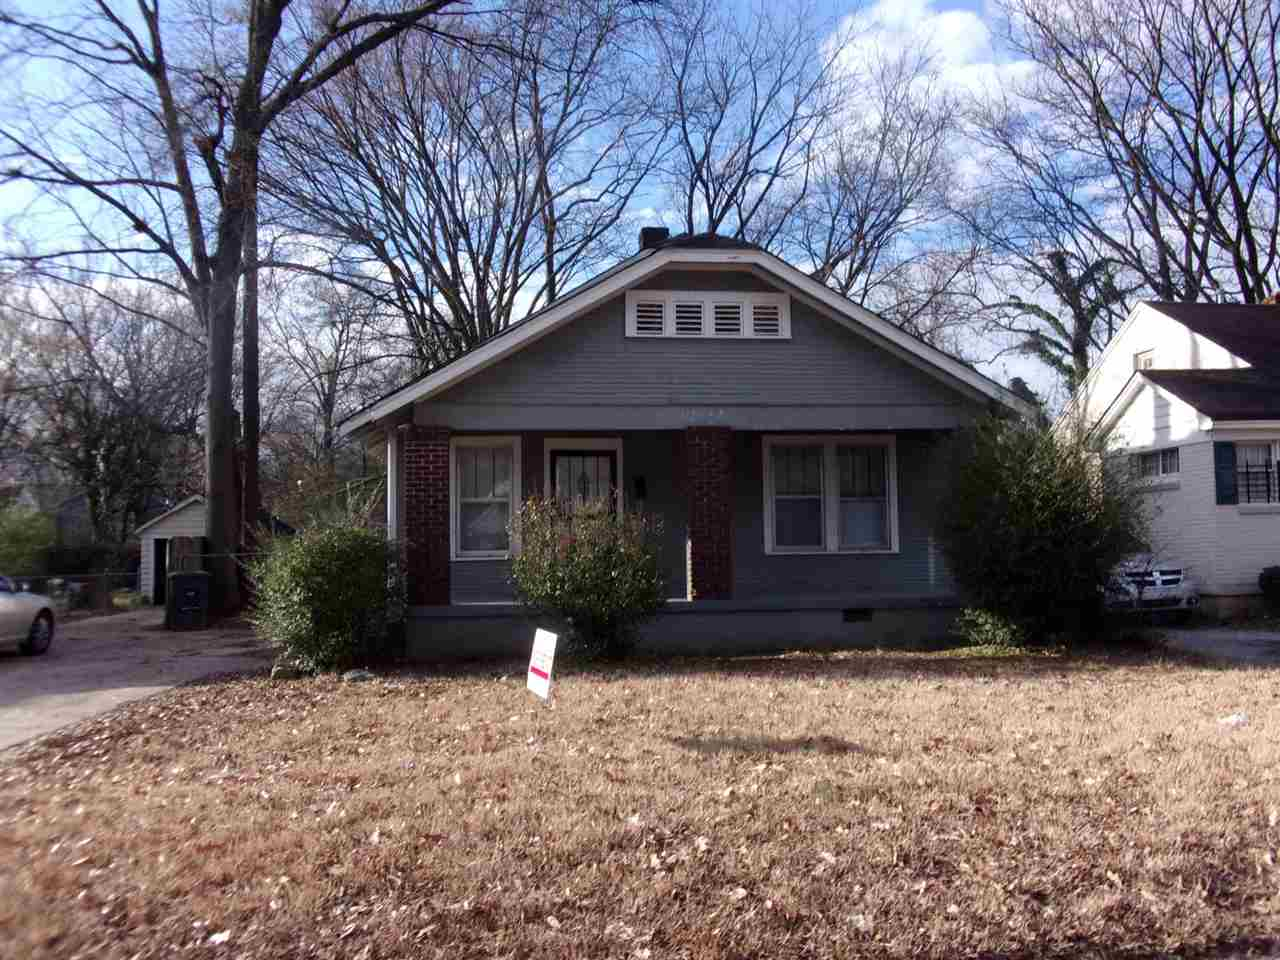 Property for sale at 3103 Chisca Rd, Memphis,  TN 38111